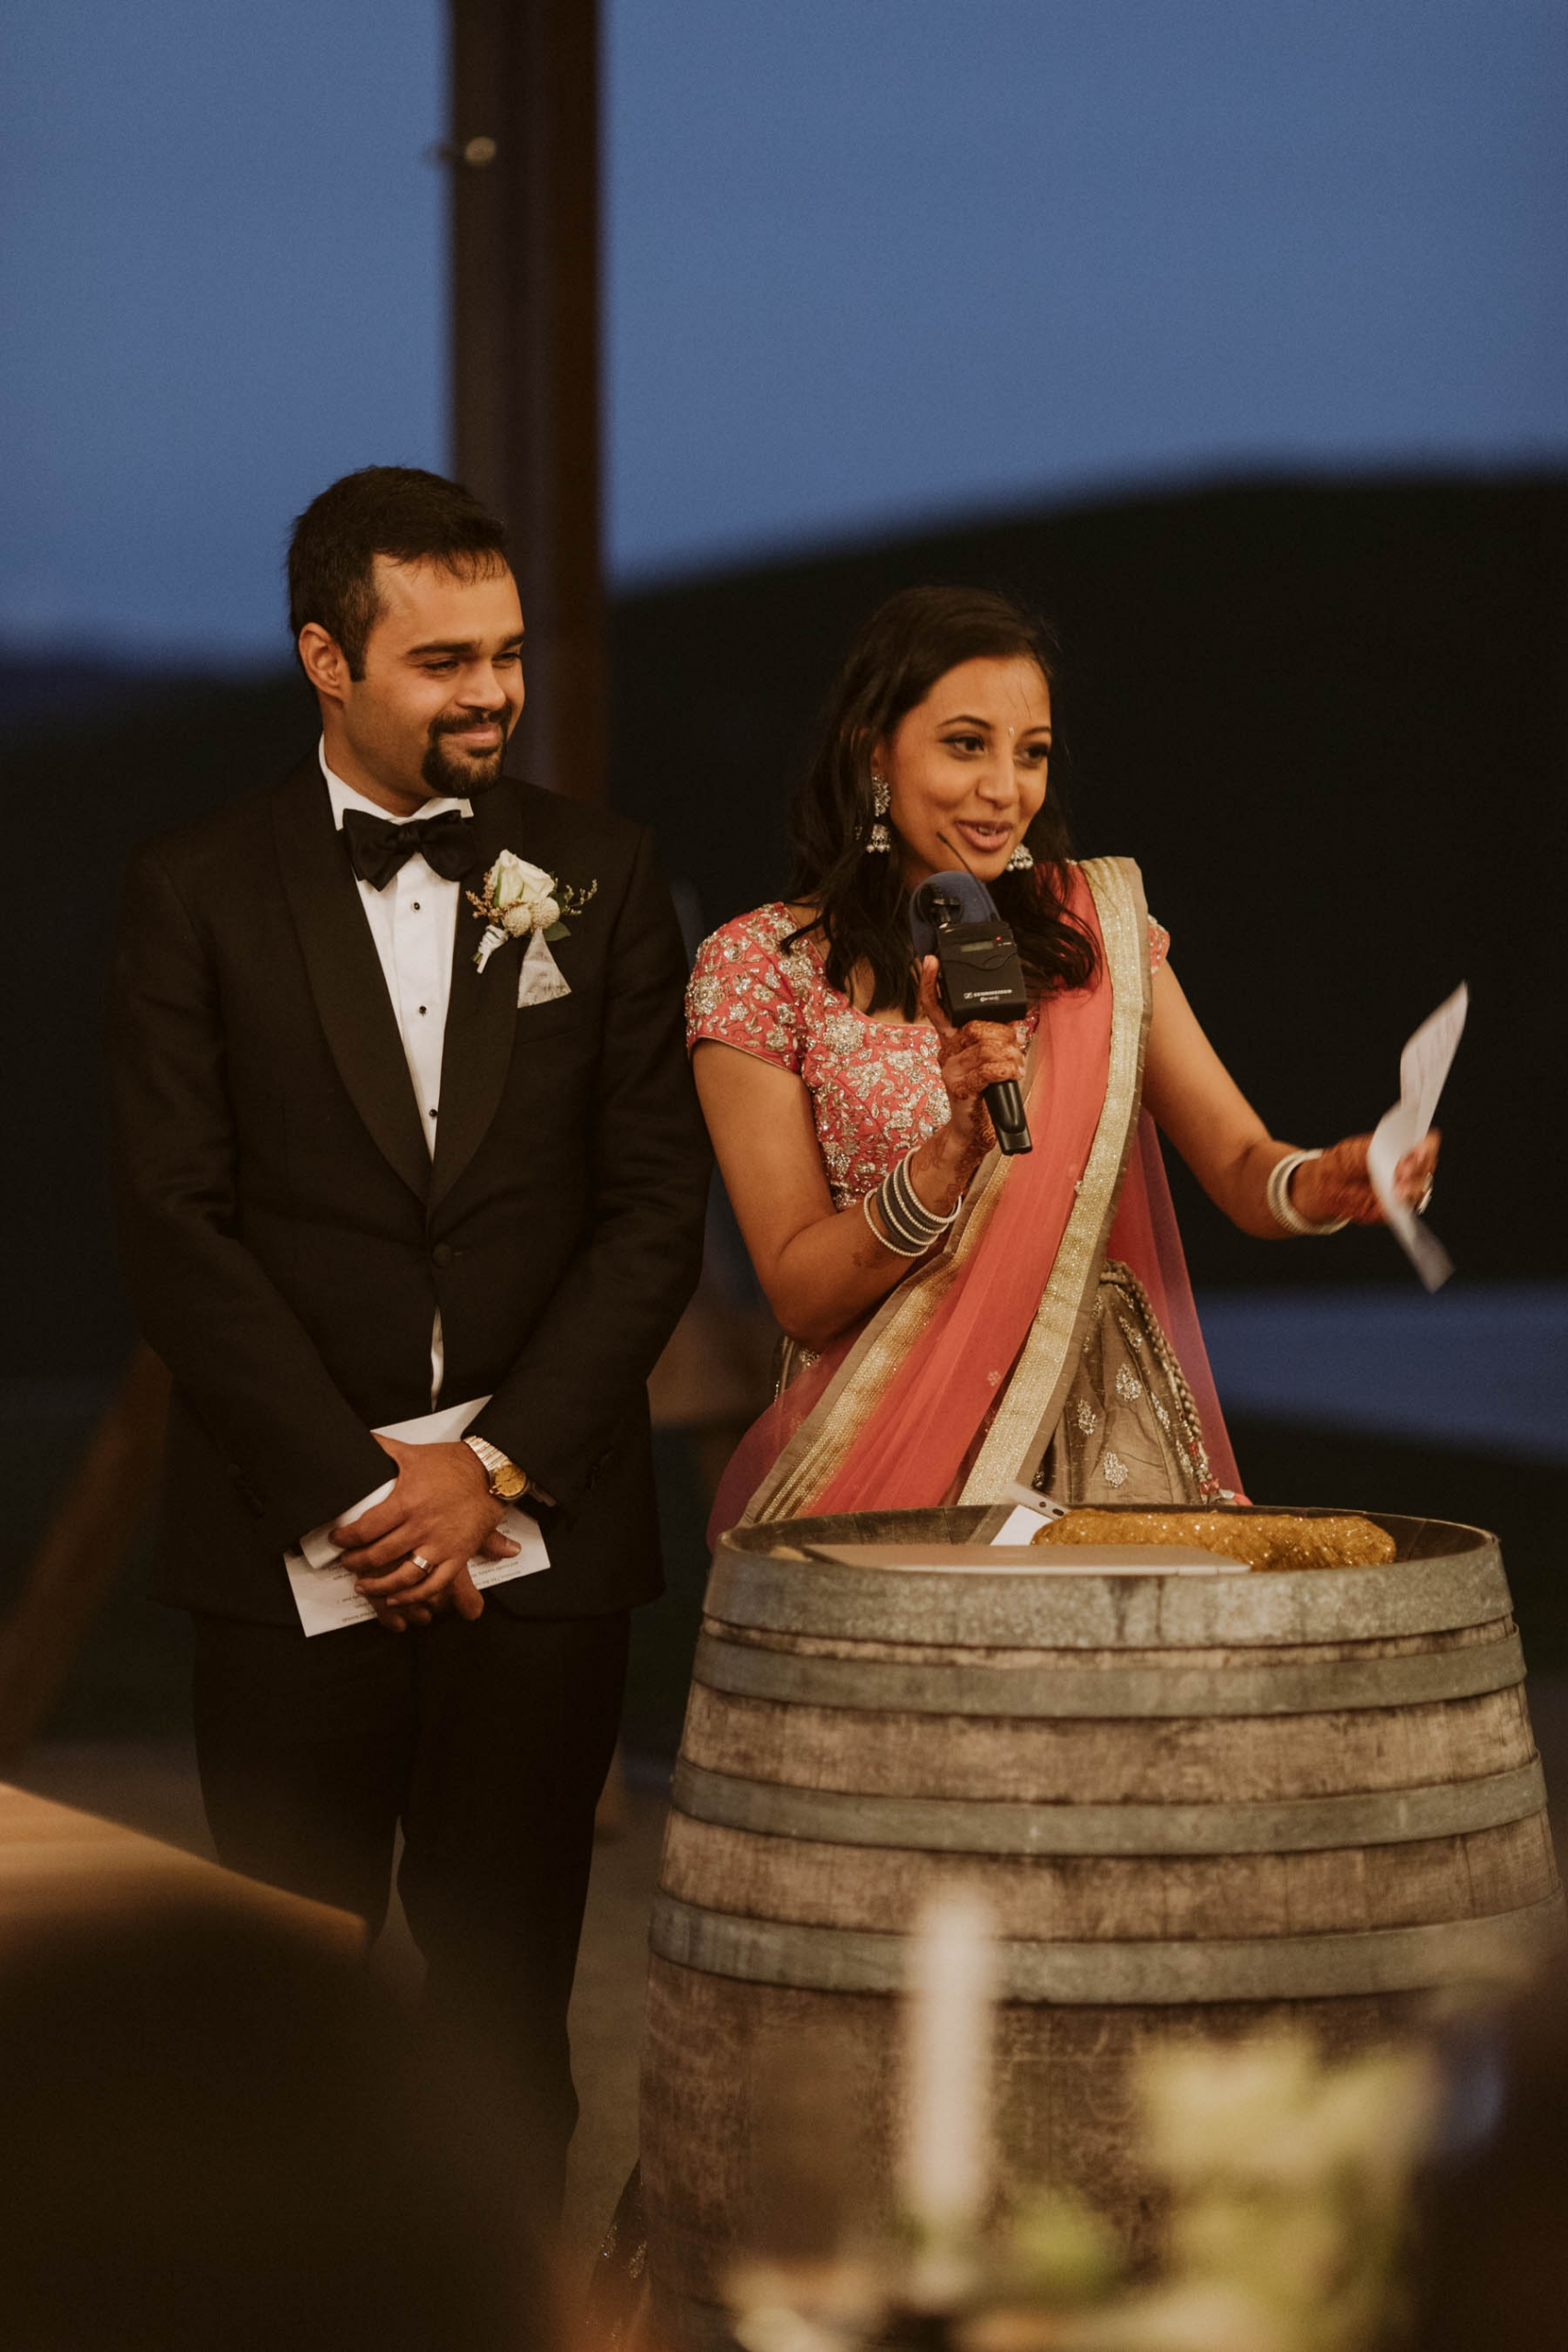 Shilpa and Shakti at their wedding reception in Auckland, New Zealand.